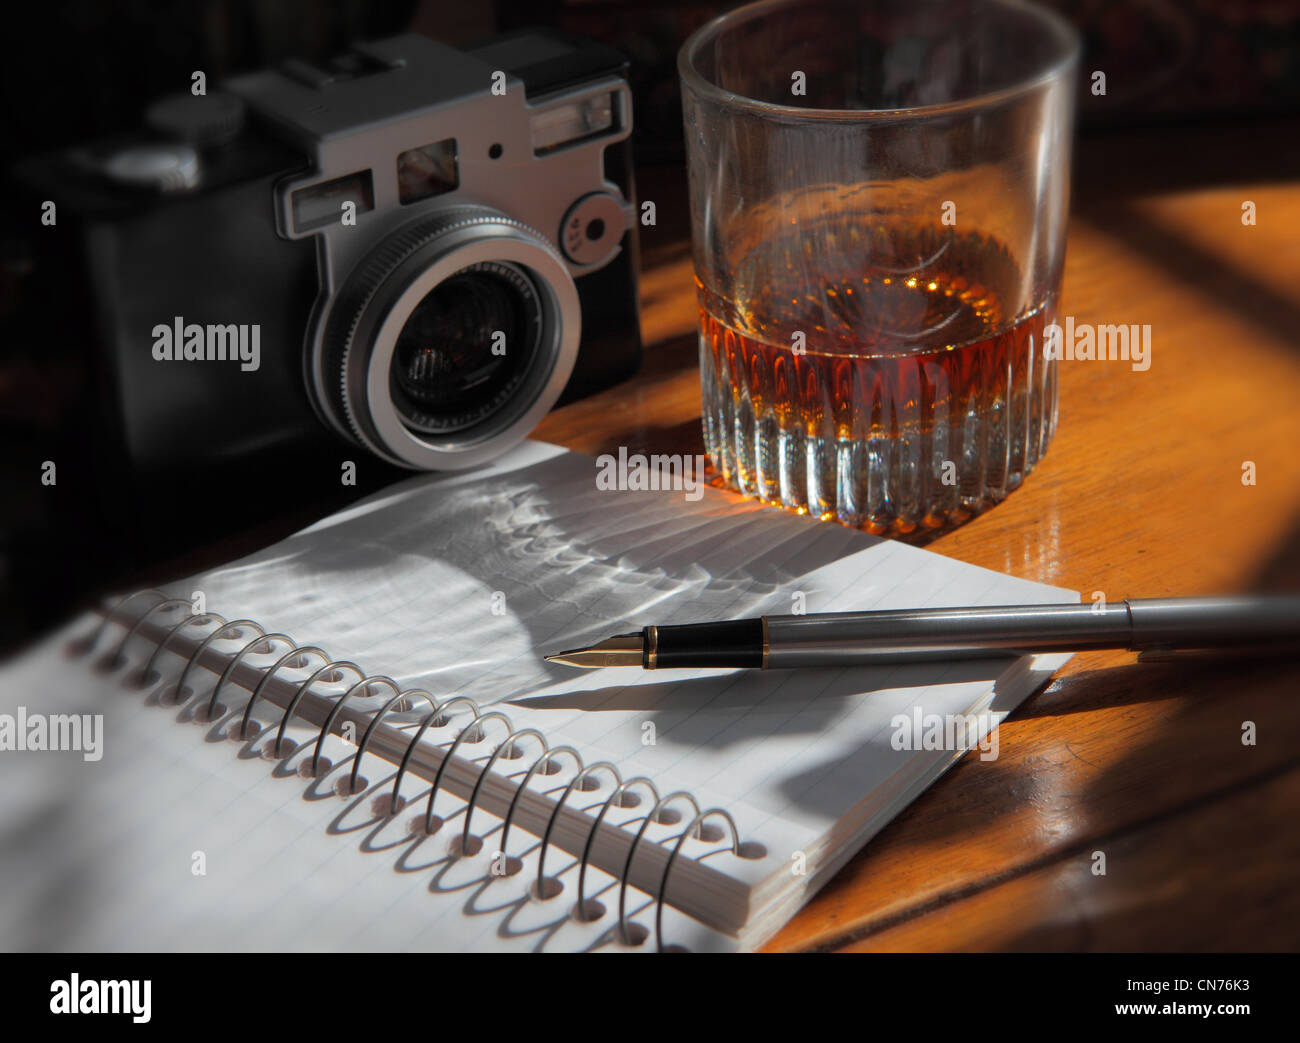 a pen resting on an open journal page, a camera and a liquor glass on a wooden table - Stock Image